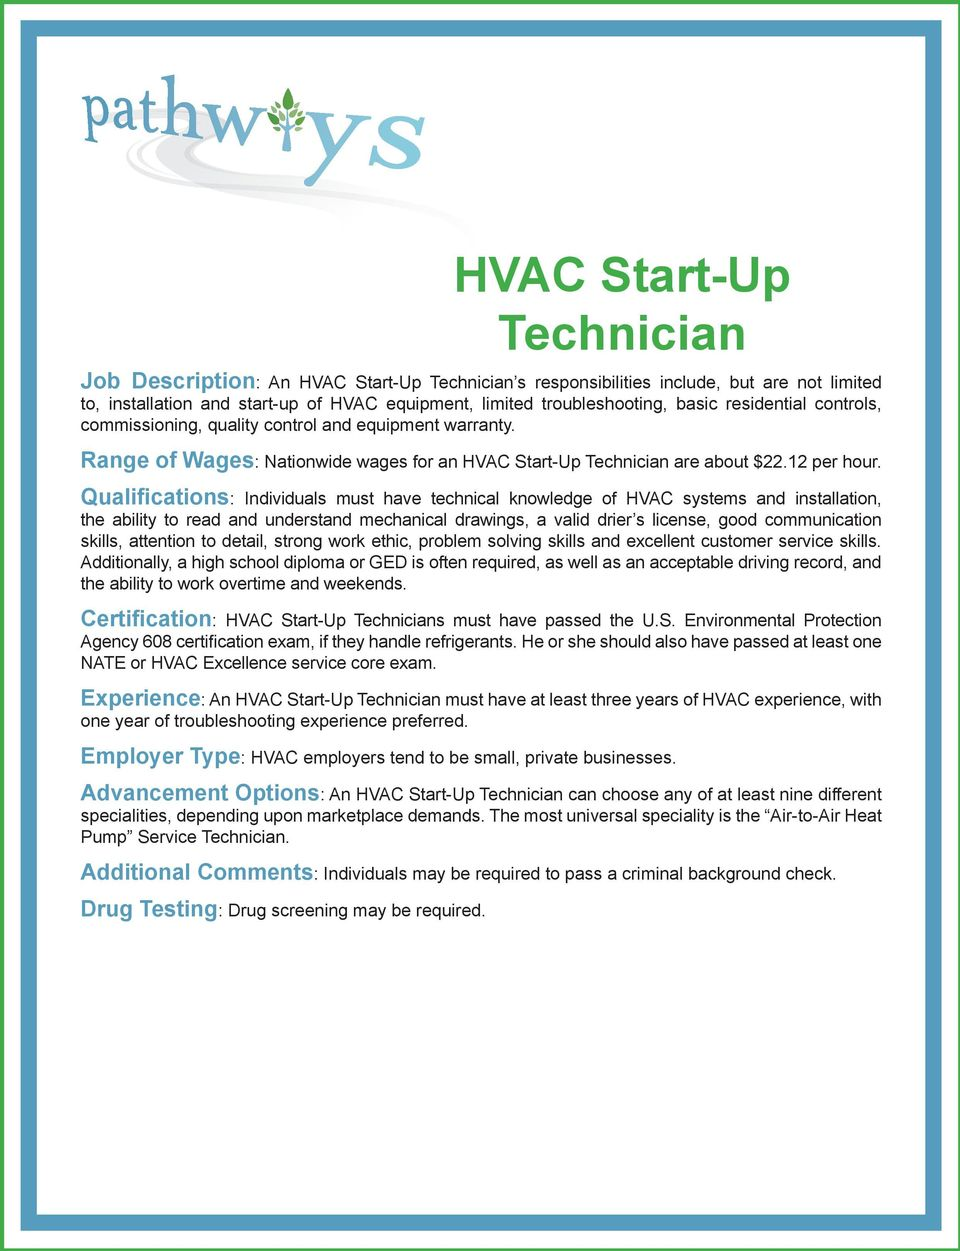 Qualifications: Individuals must have technical knowledge of HVAC systems and installation, the ability to read and understand mechanical drawings, a valid drier s license, good communication skills,